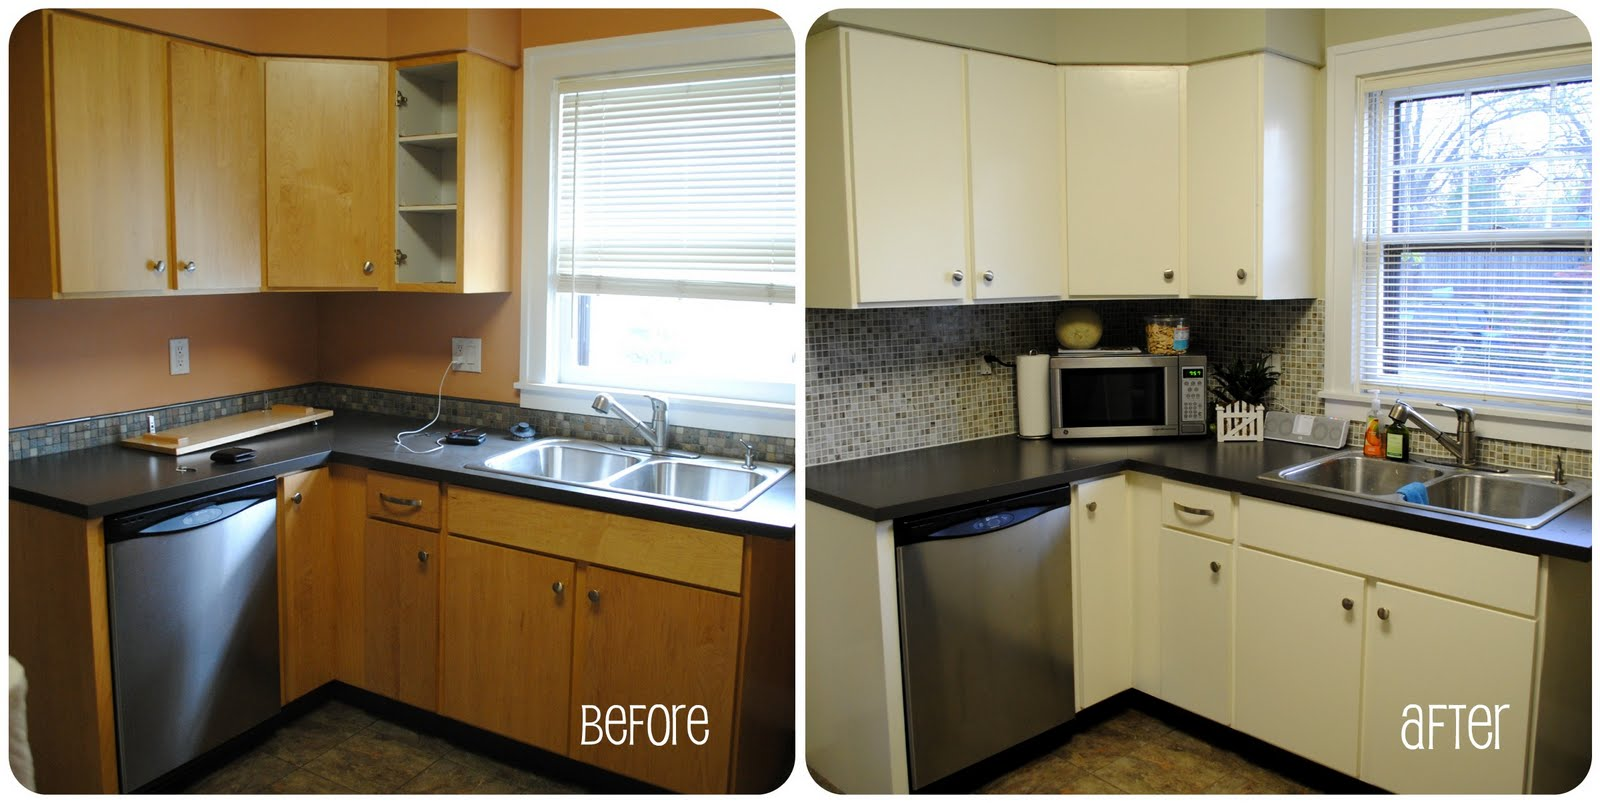 The daily brees kitchen before after for Before and after pictures of painted laminate kitchen cabinets